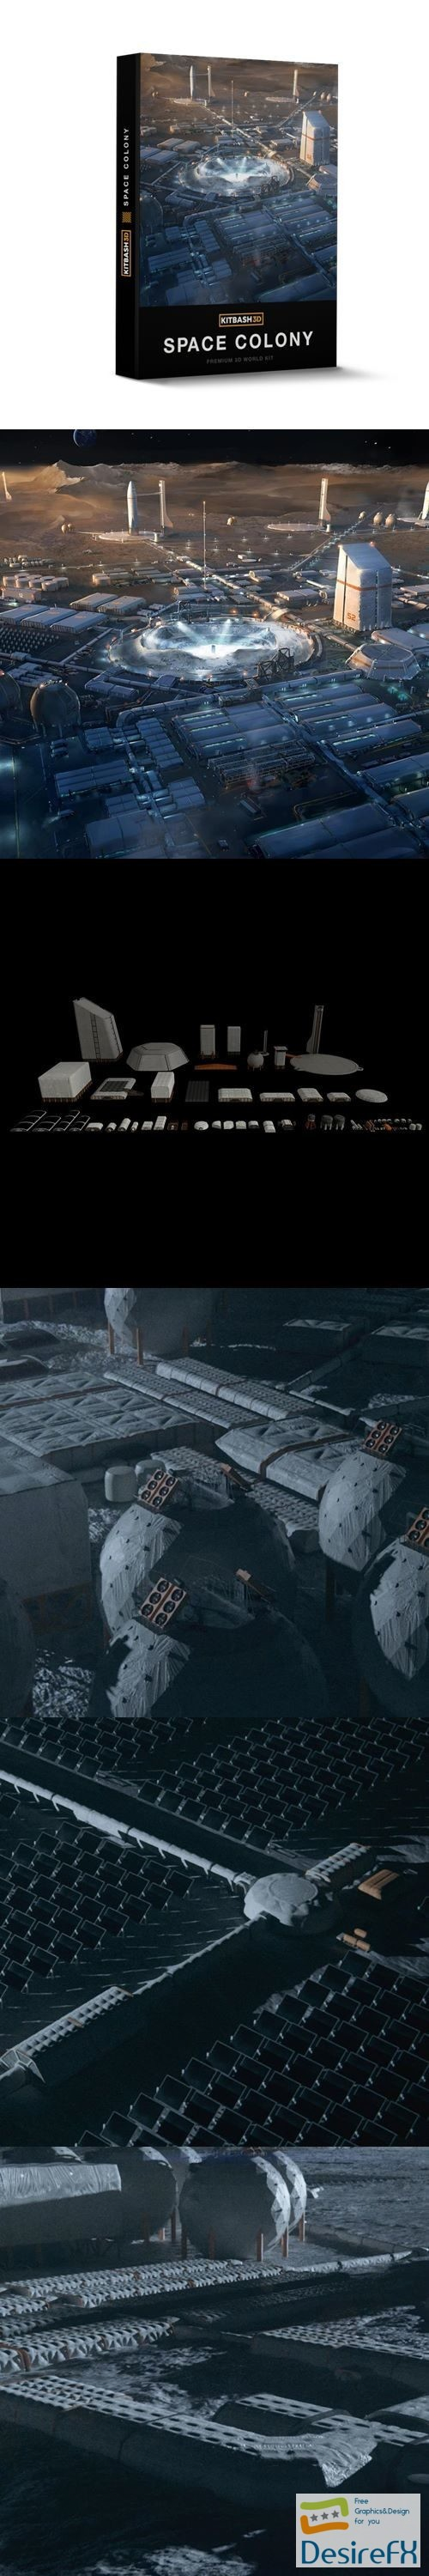 3d-models - Space Colony by Kitbash3d